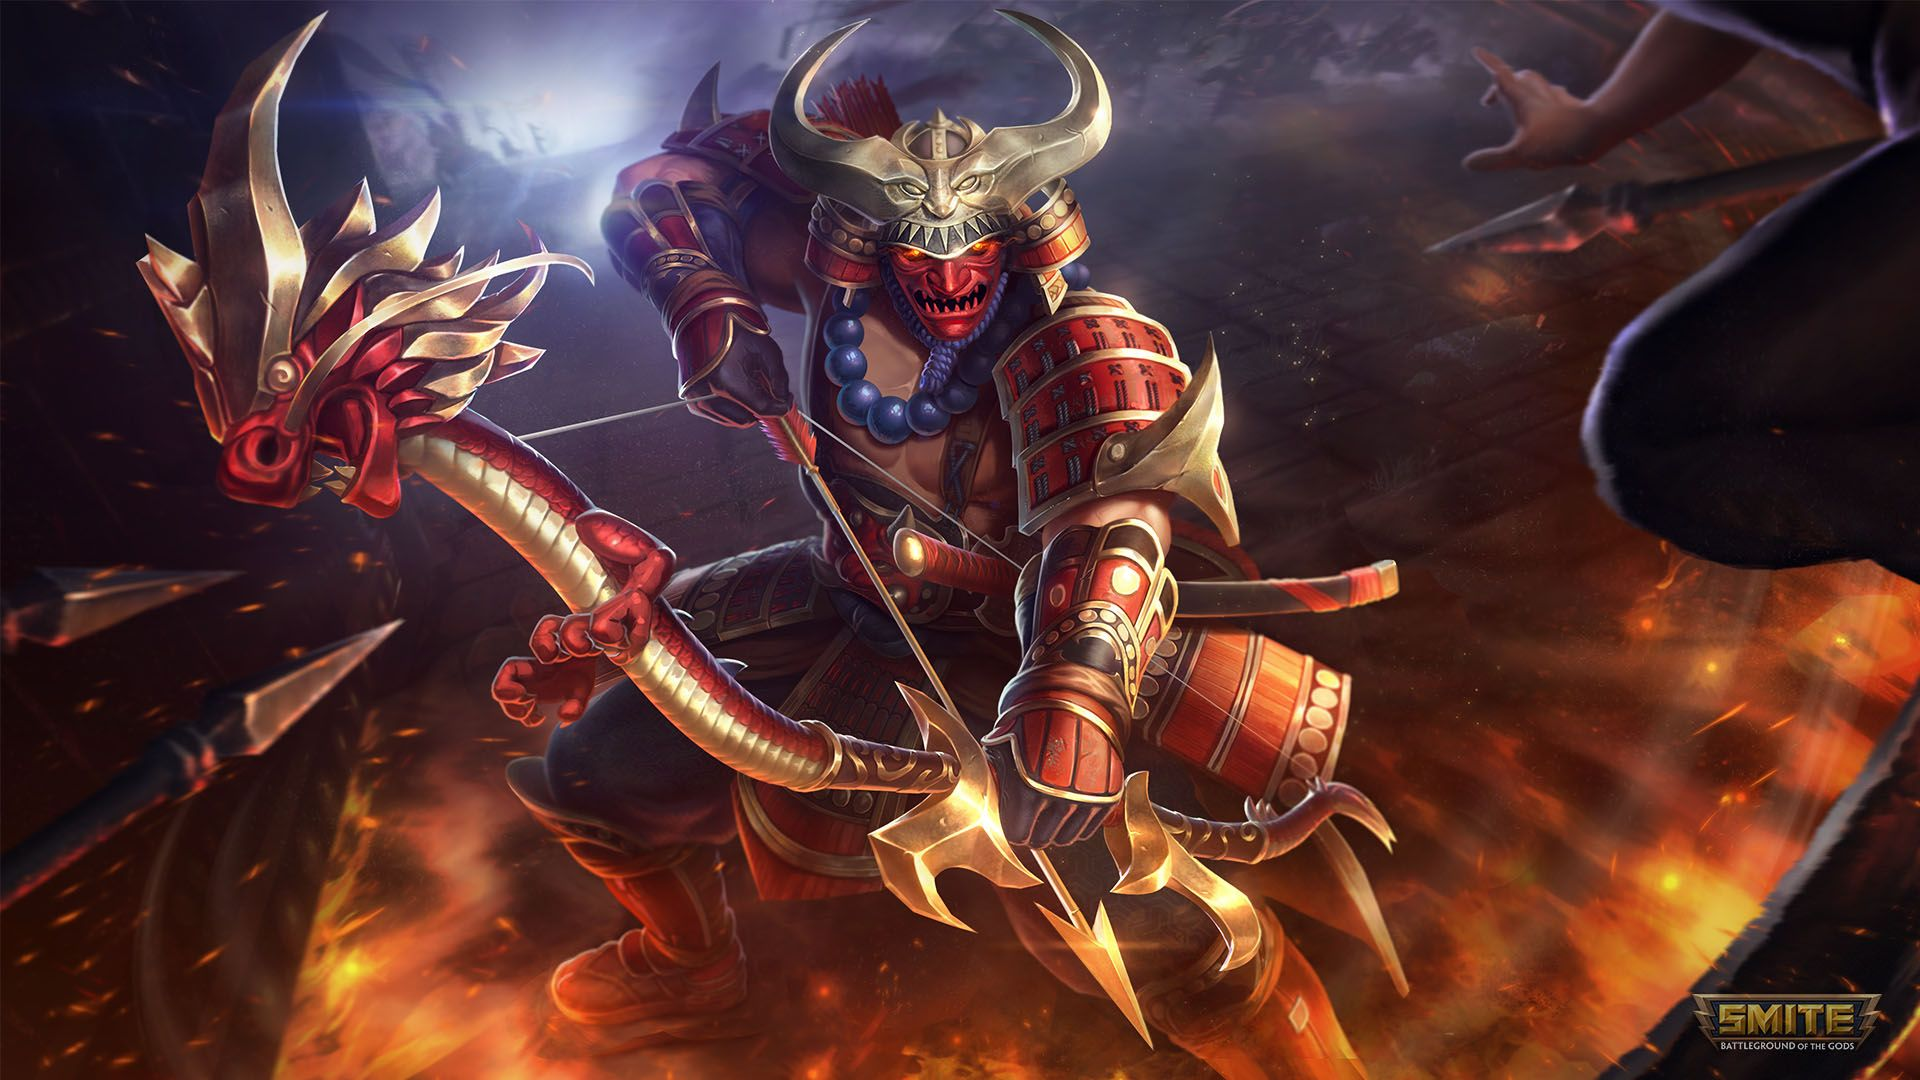 Smite Hd Wallpaper Posted By Michelle Tremblay